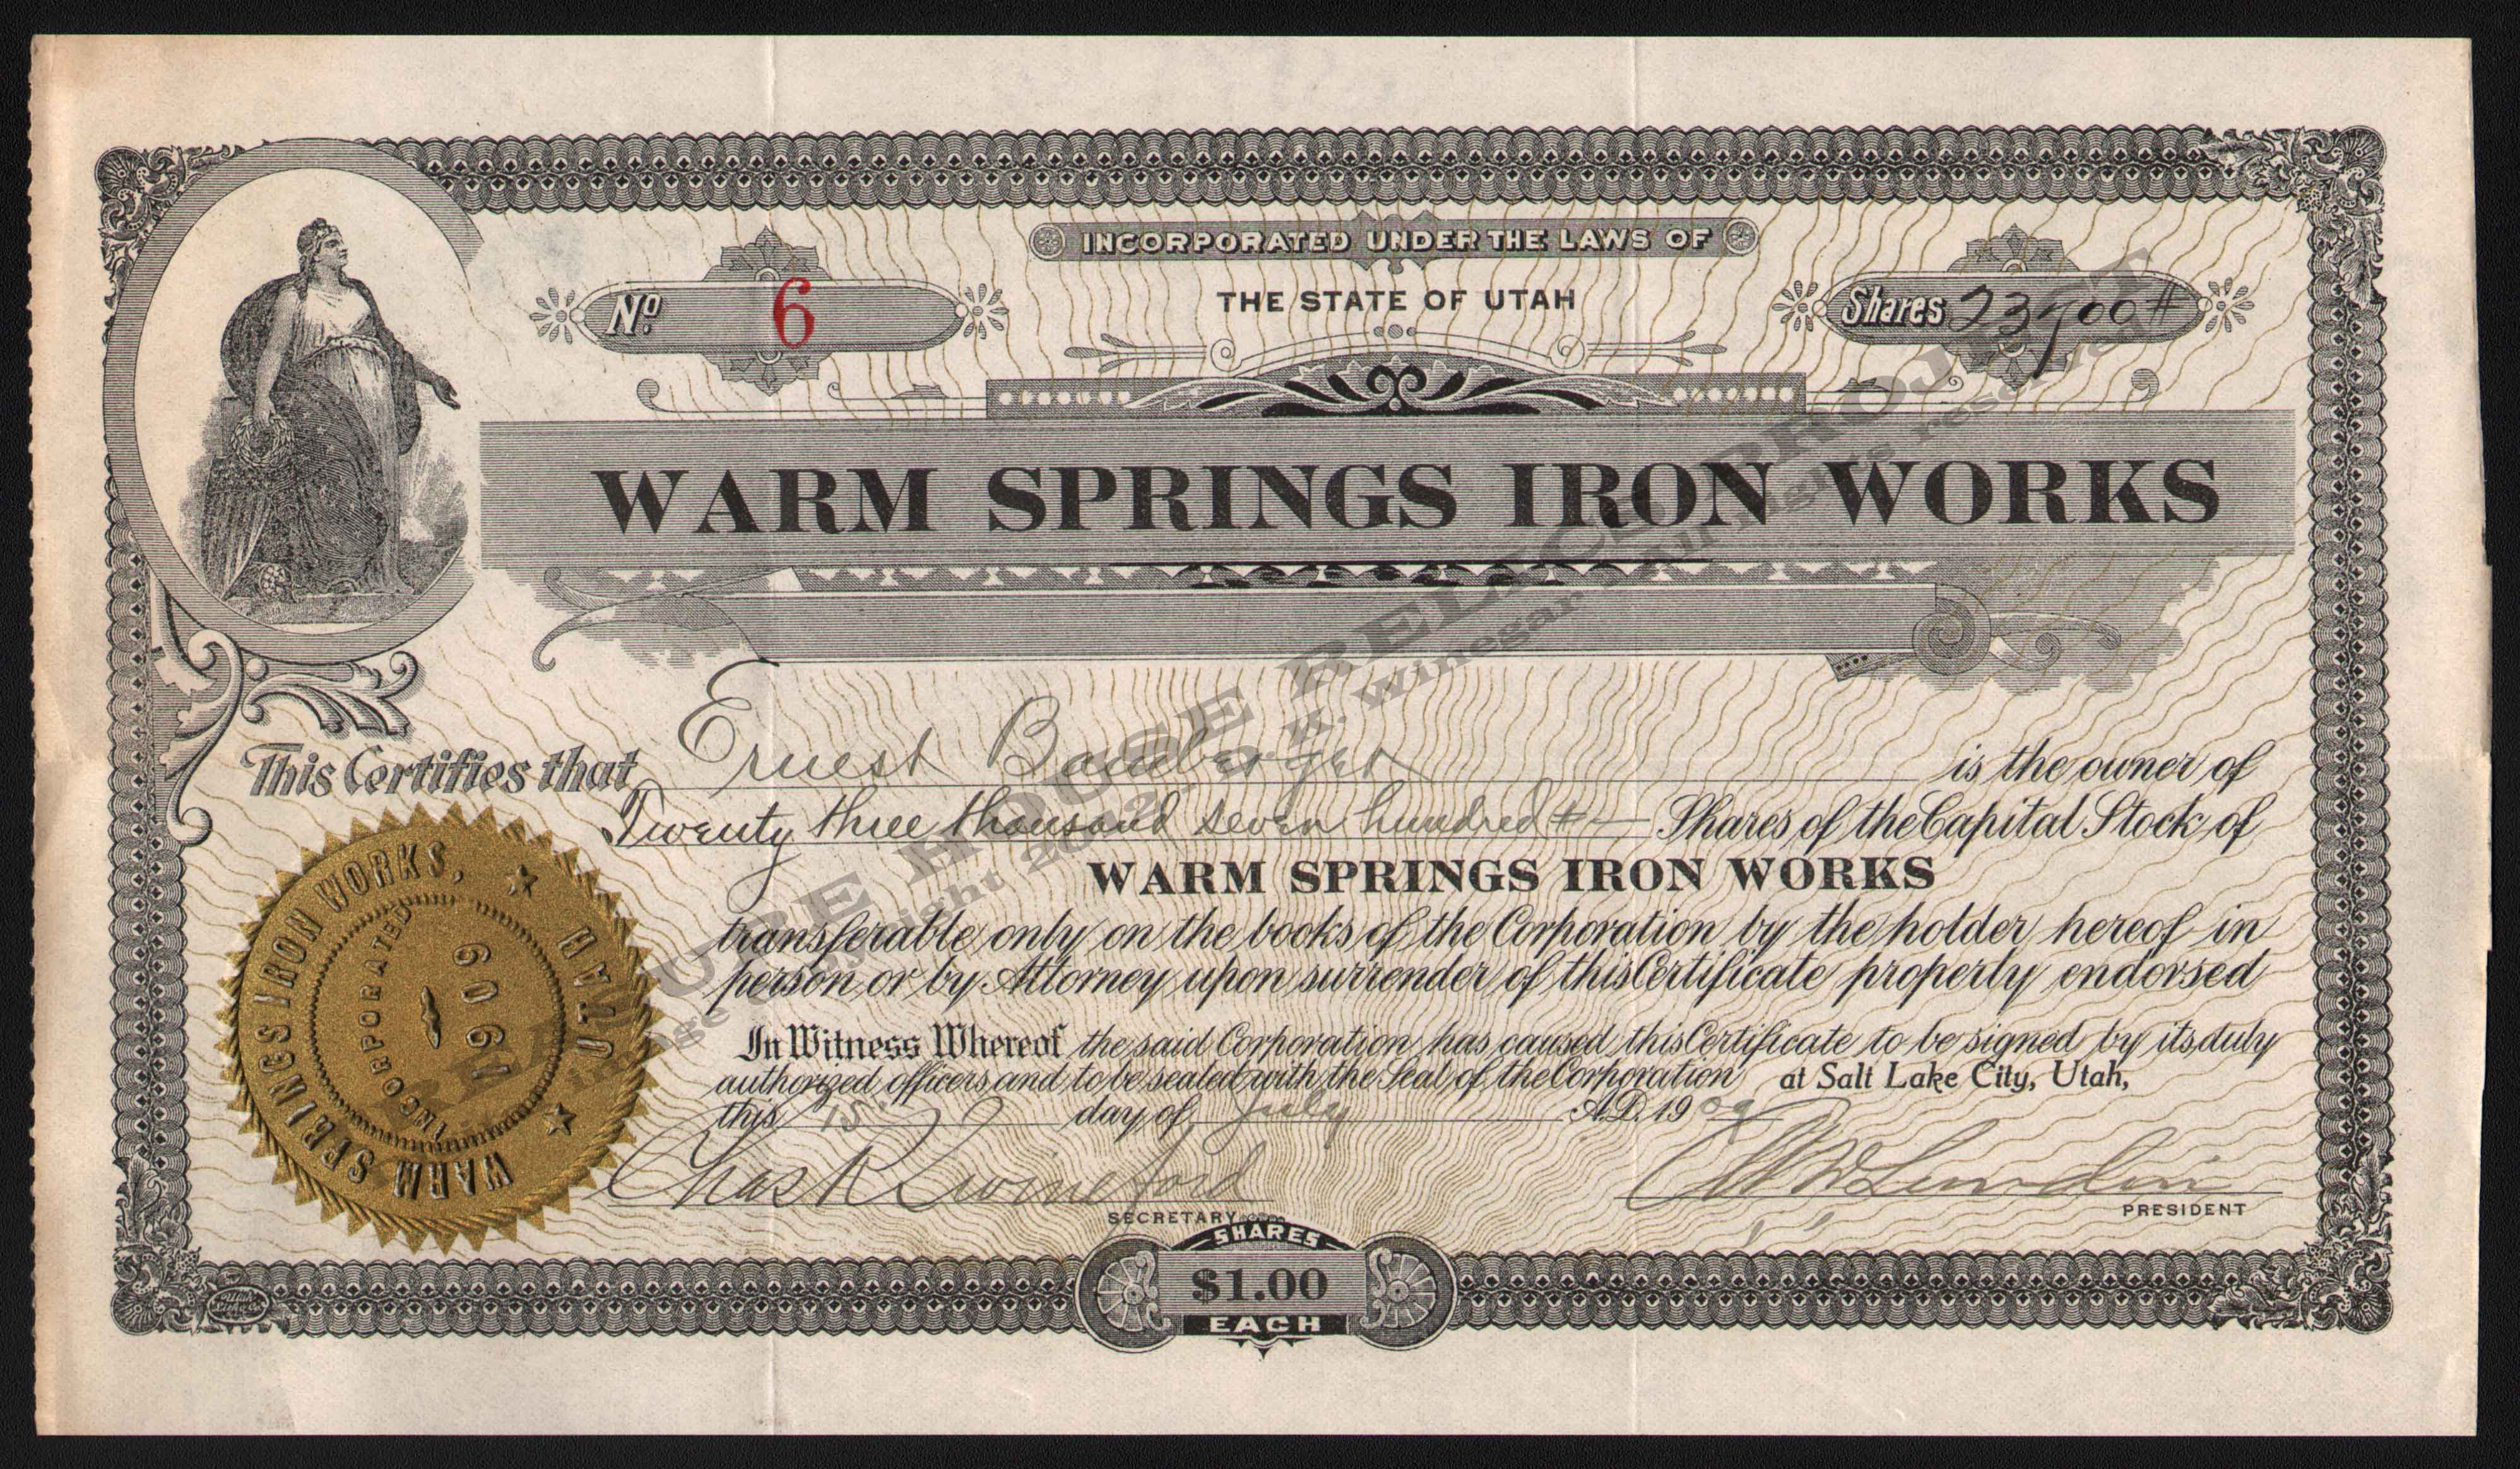 LETTERHEAD/WARM_SPRINGS_IRON_WORKS_6_1904_BAM_400_crop_emboss.jpg